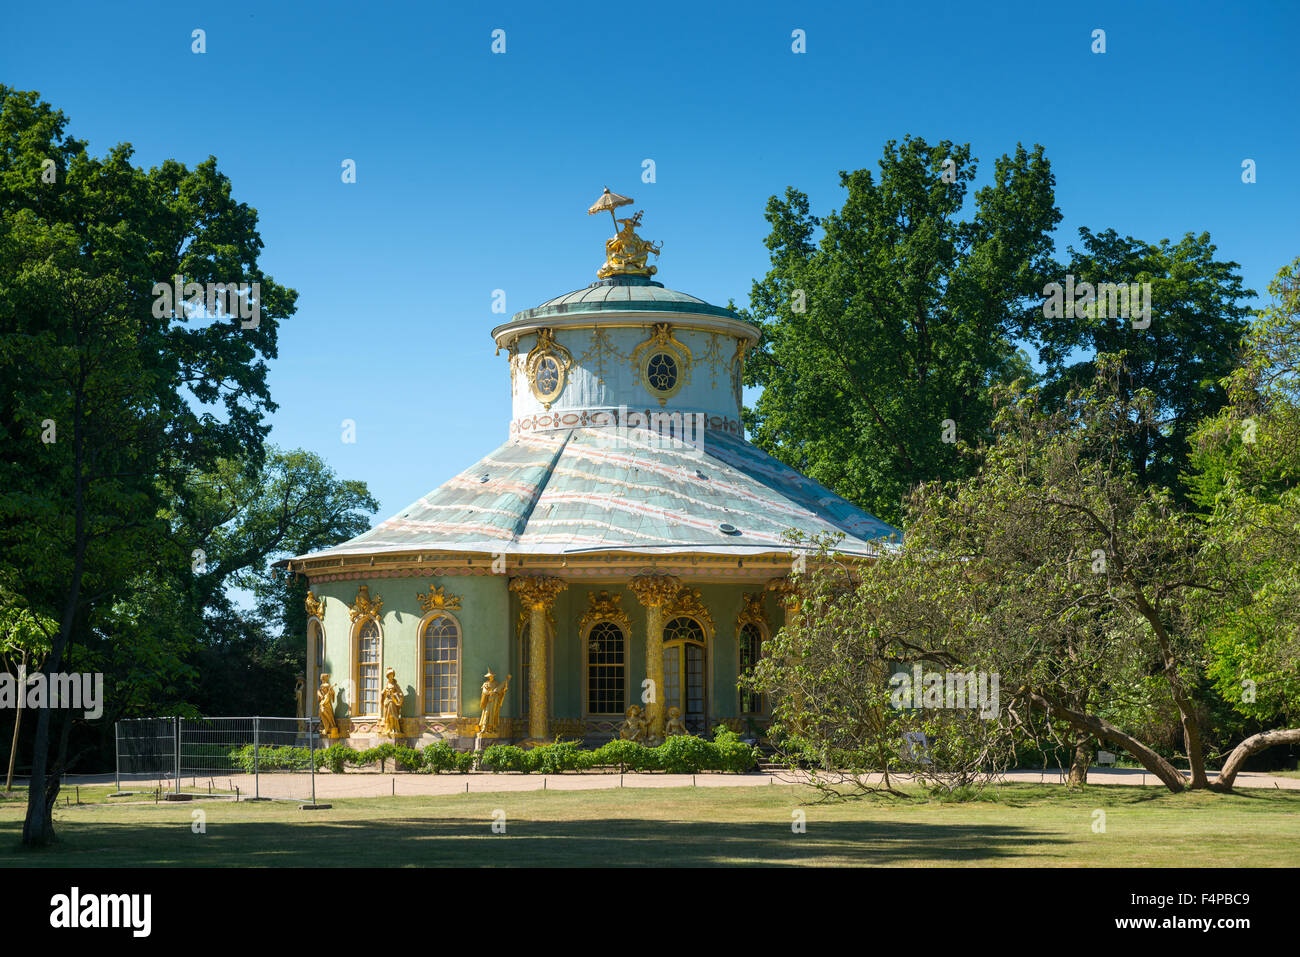 Chinese House in Sanssouci Park in Potsdam, Germany - Stock Image